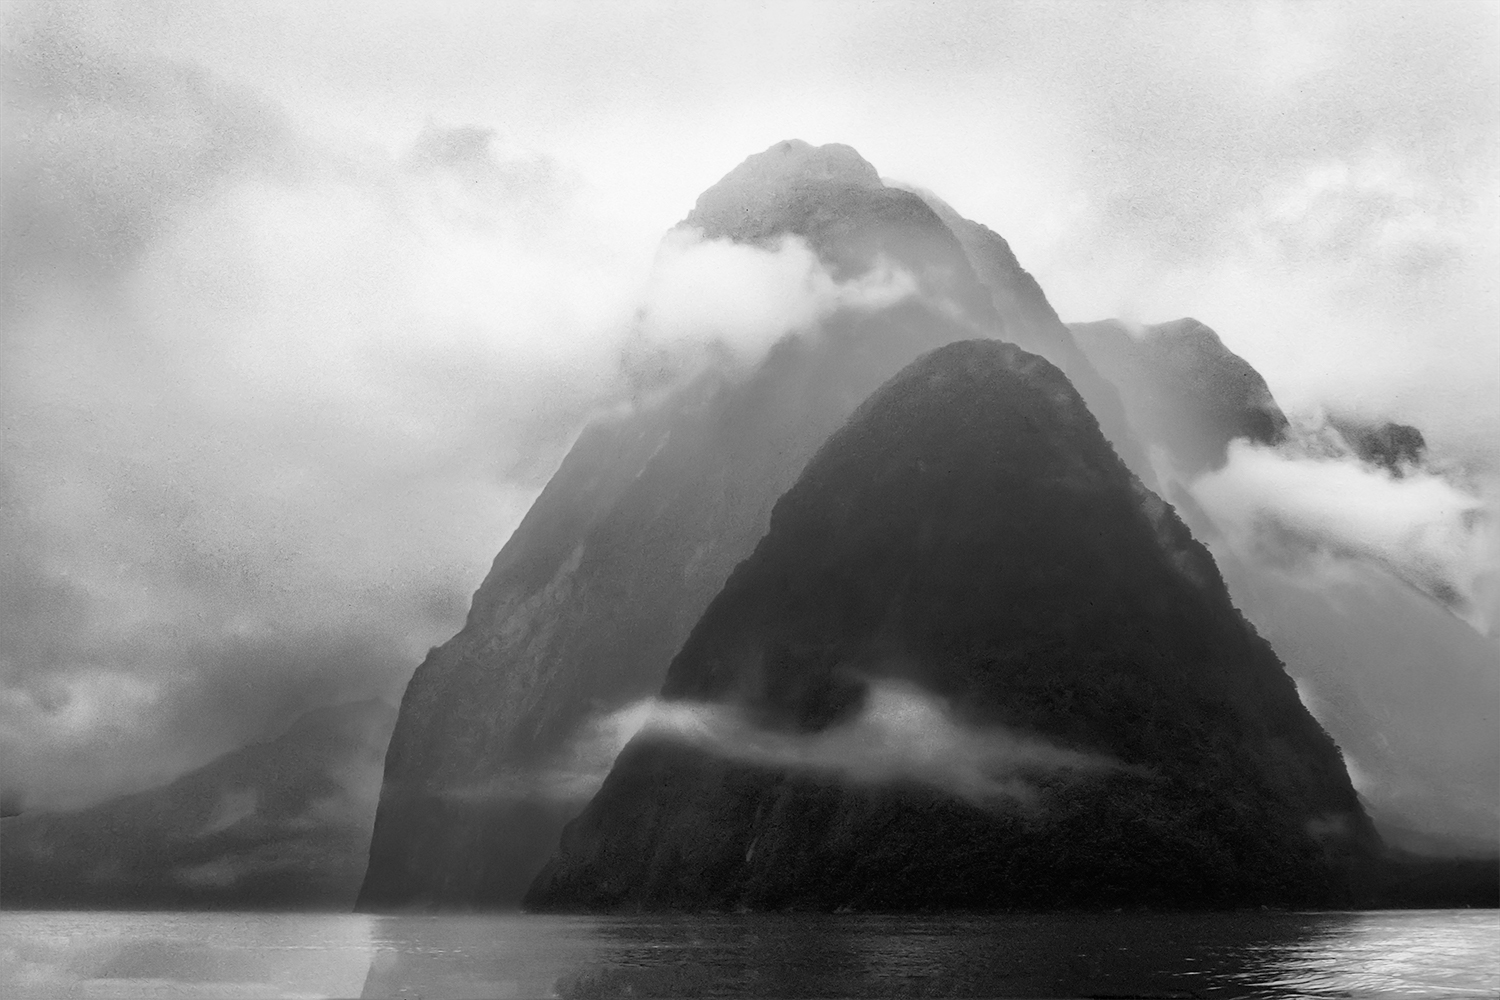 Mitre Peak and Clouds, Milford Sound, New Zealand